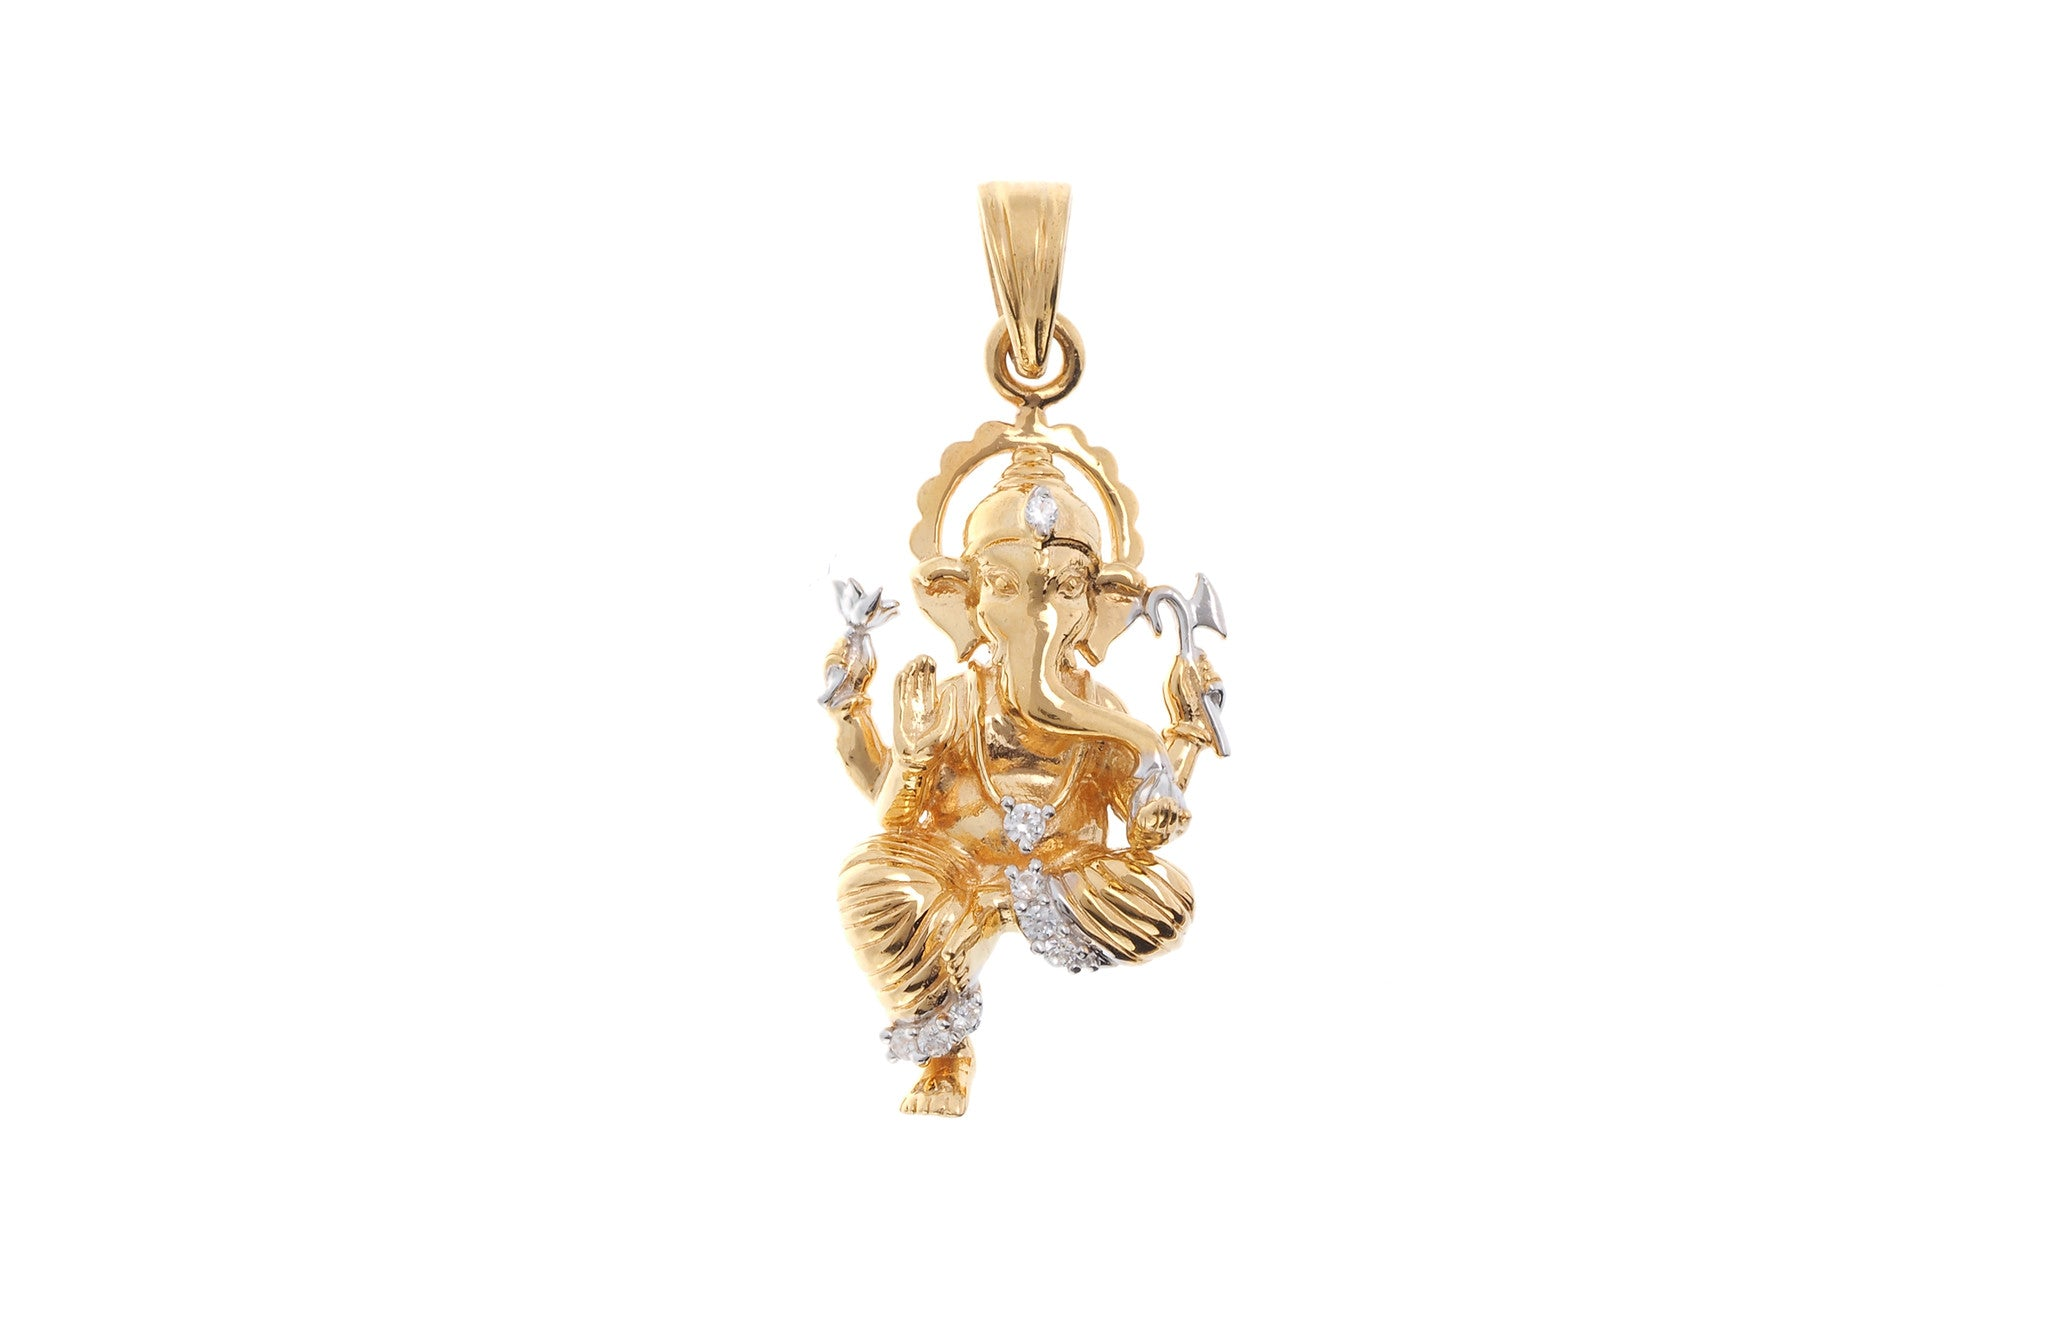 22ct Yellow Gold Cubic Zirconia Ganesh Pendant, Minar Jewellers - 2